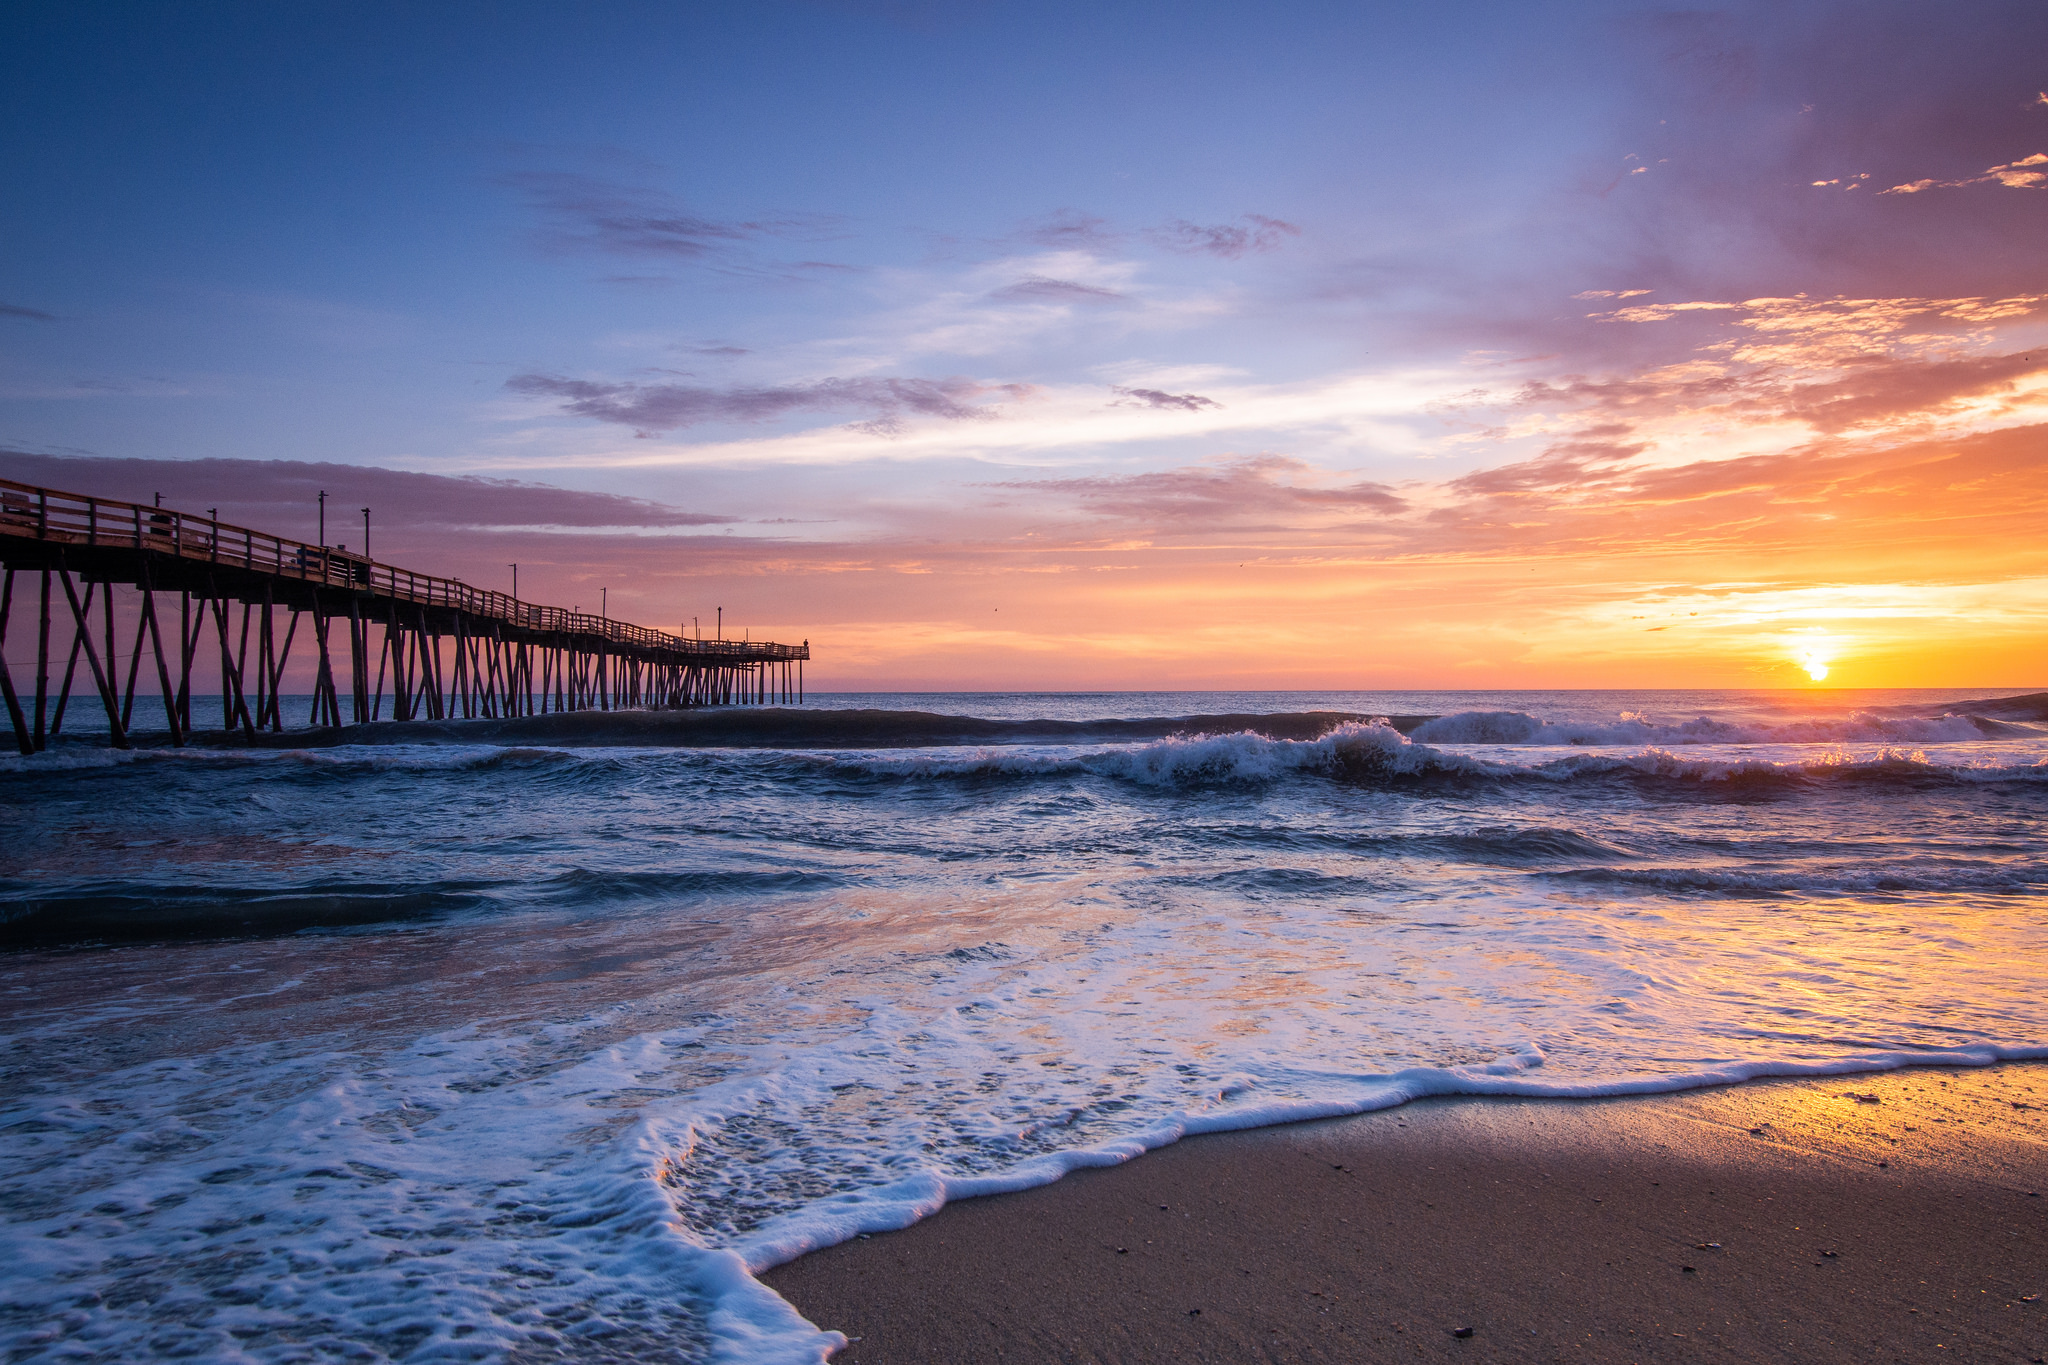 Top 5 Things to do this Fall in the Outer Banks